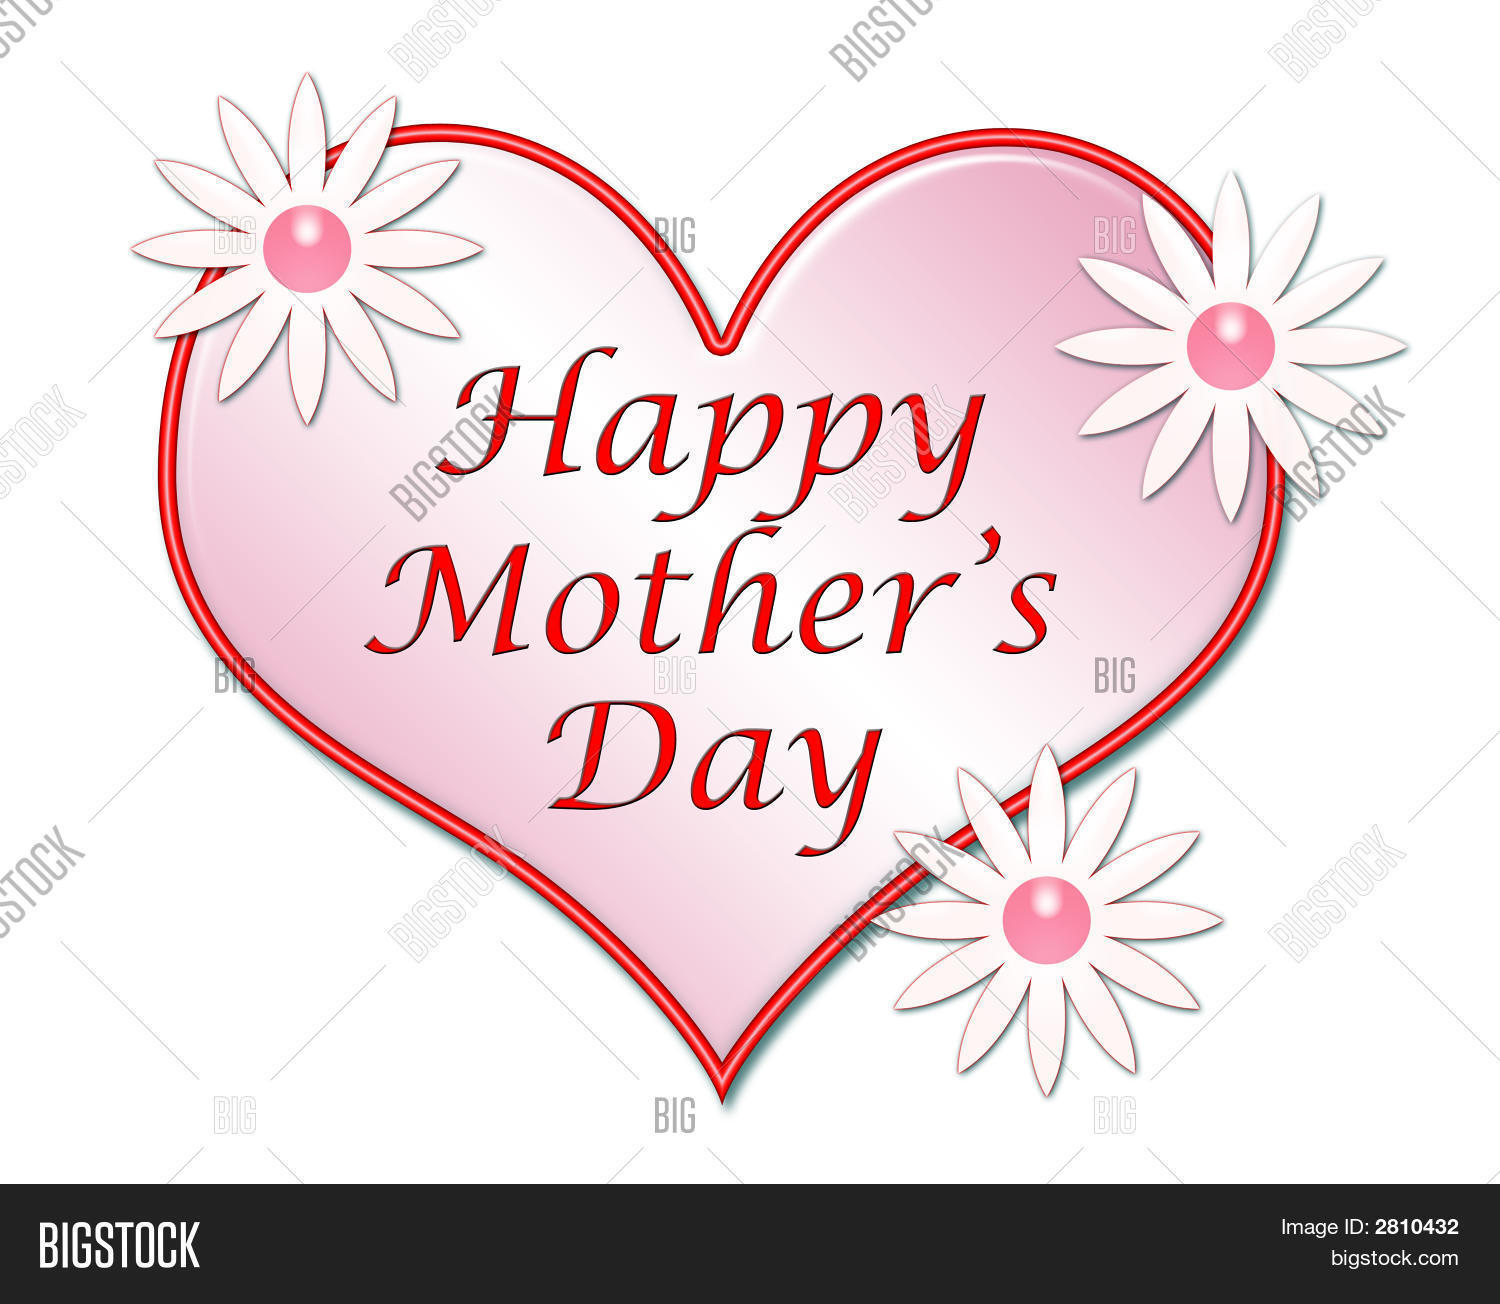 happy mother s day image photo free trial bigstock